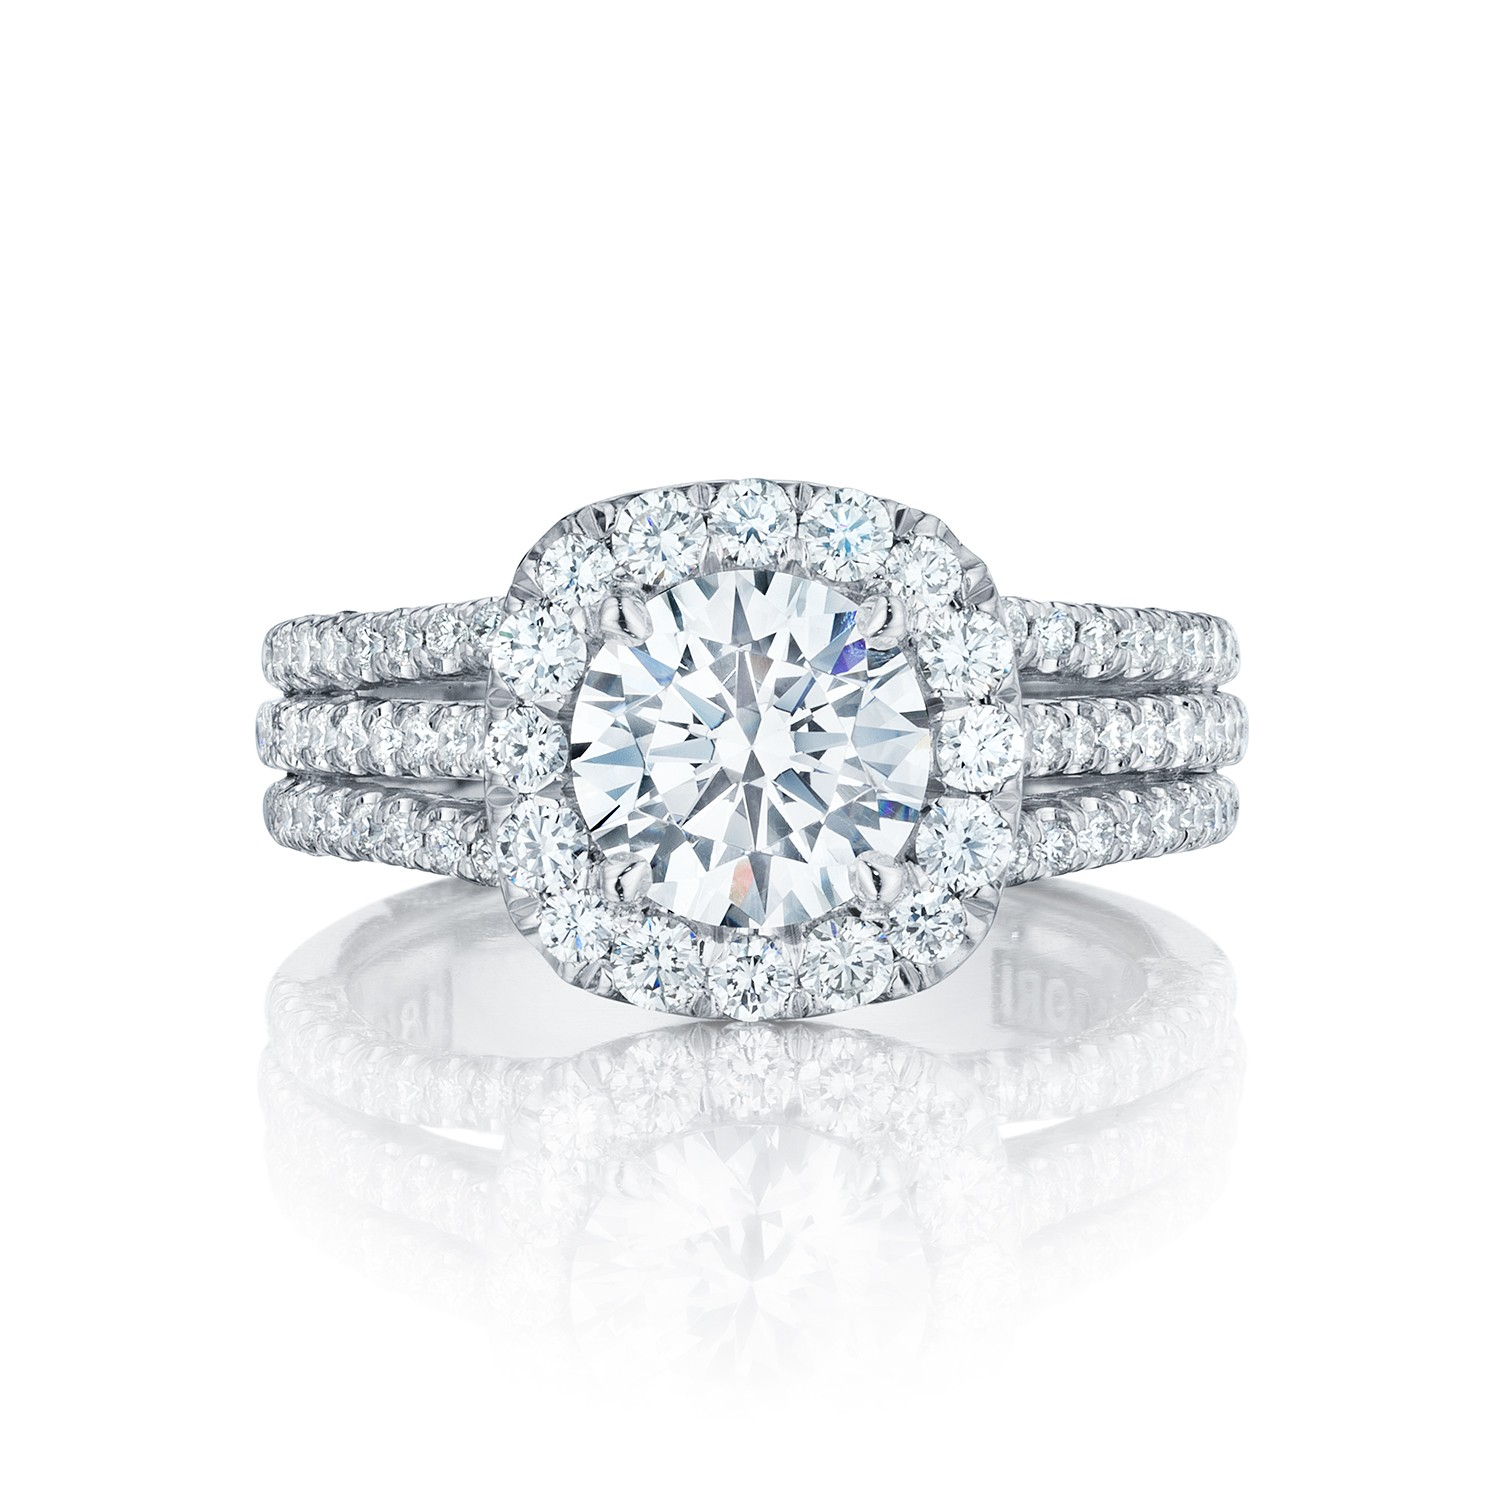 Tacori engagement rings crescent diamond halo for Halo engagement rings with wedding bands